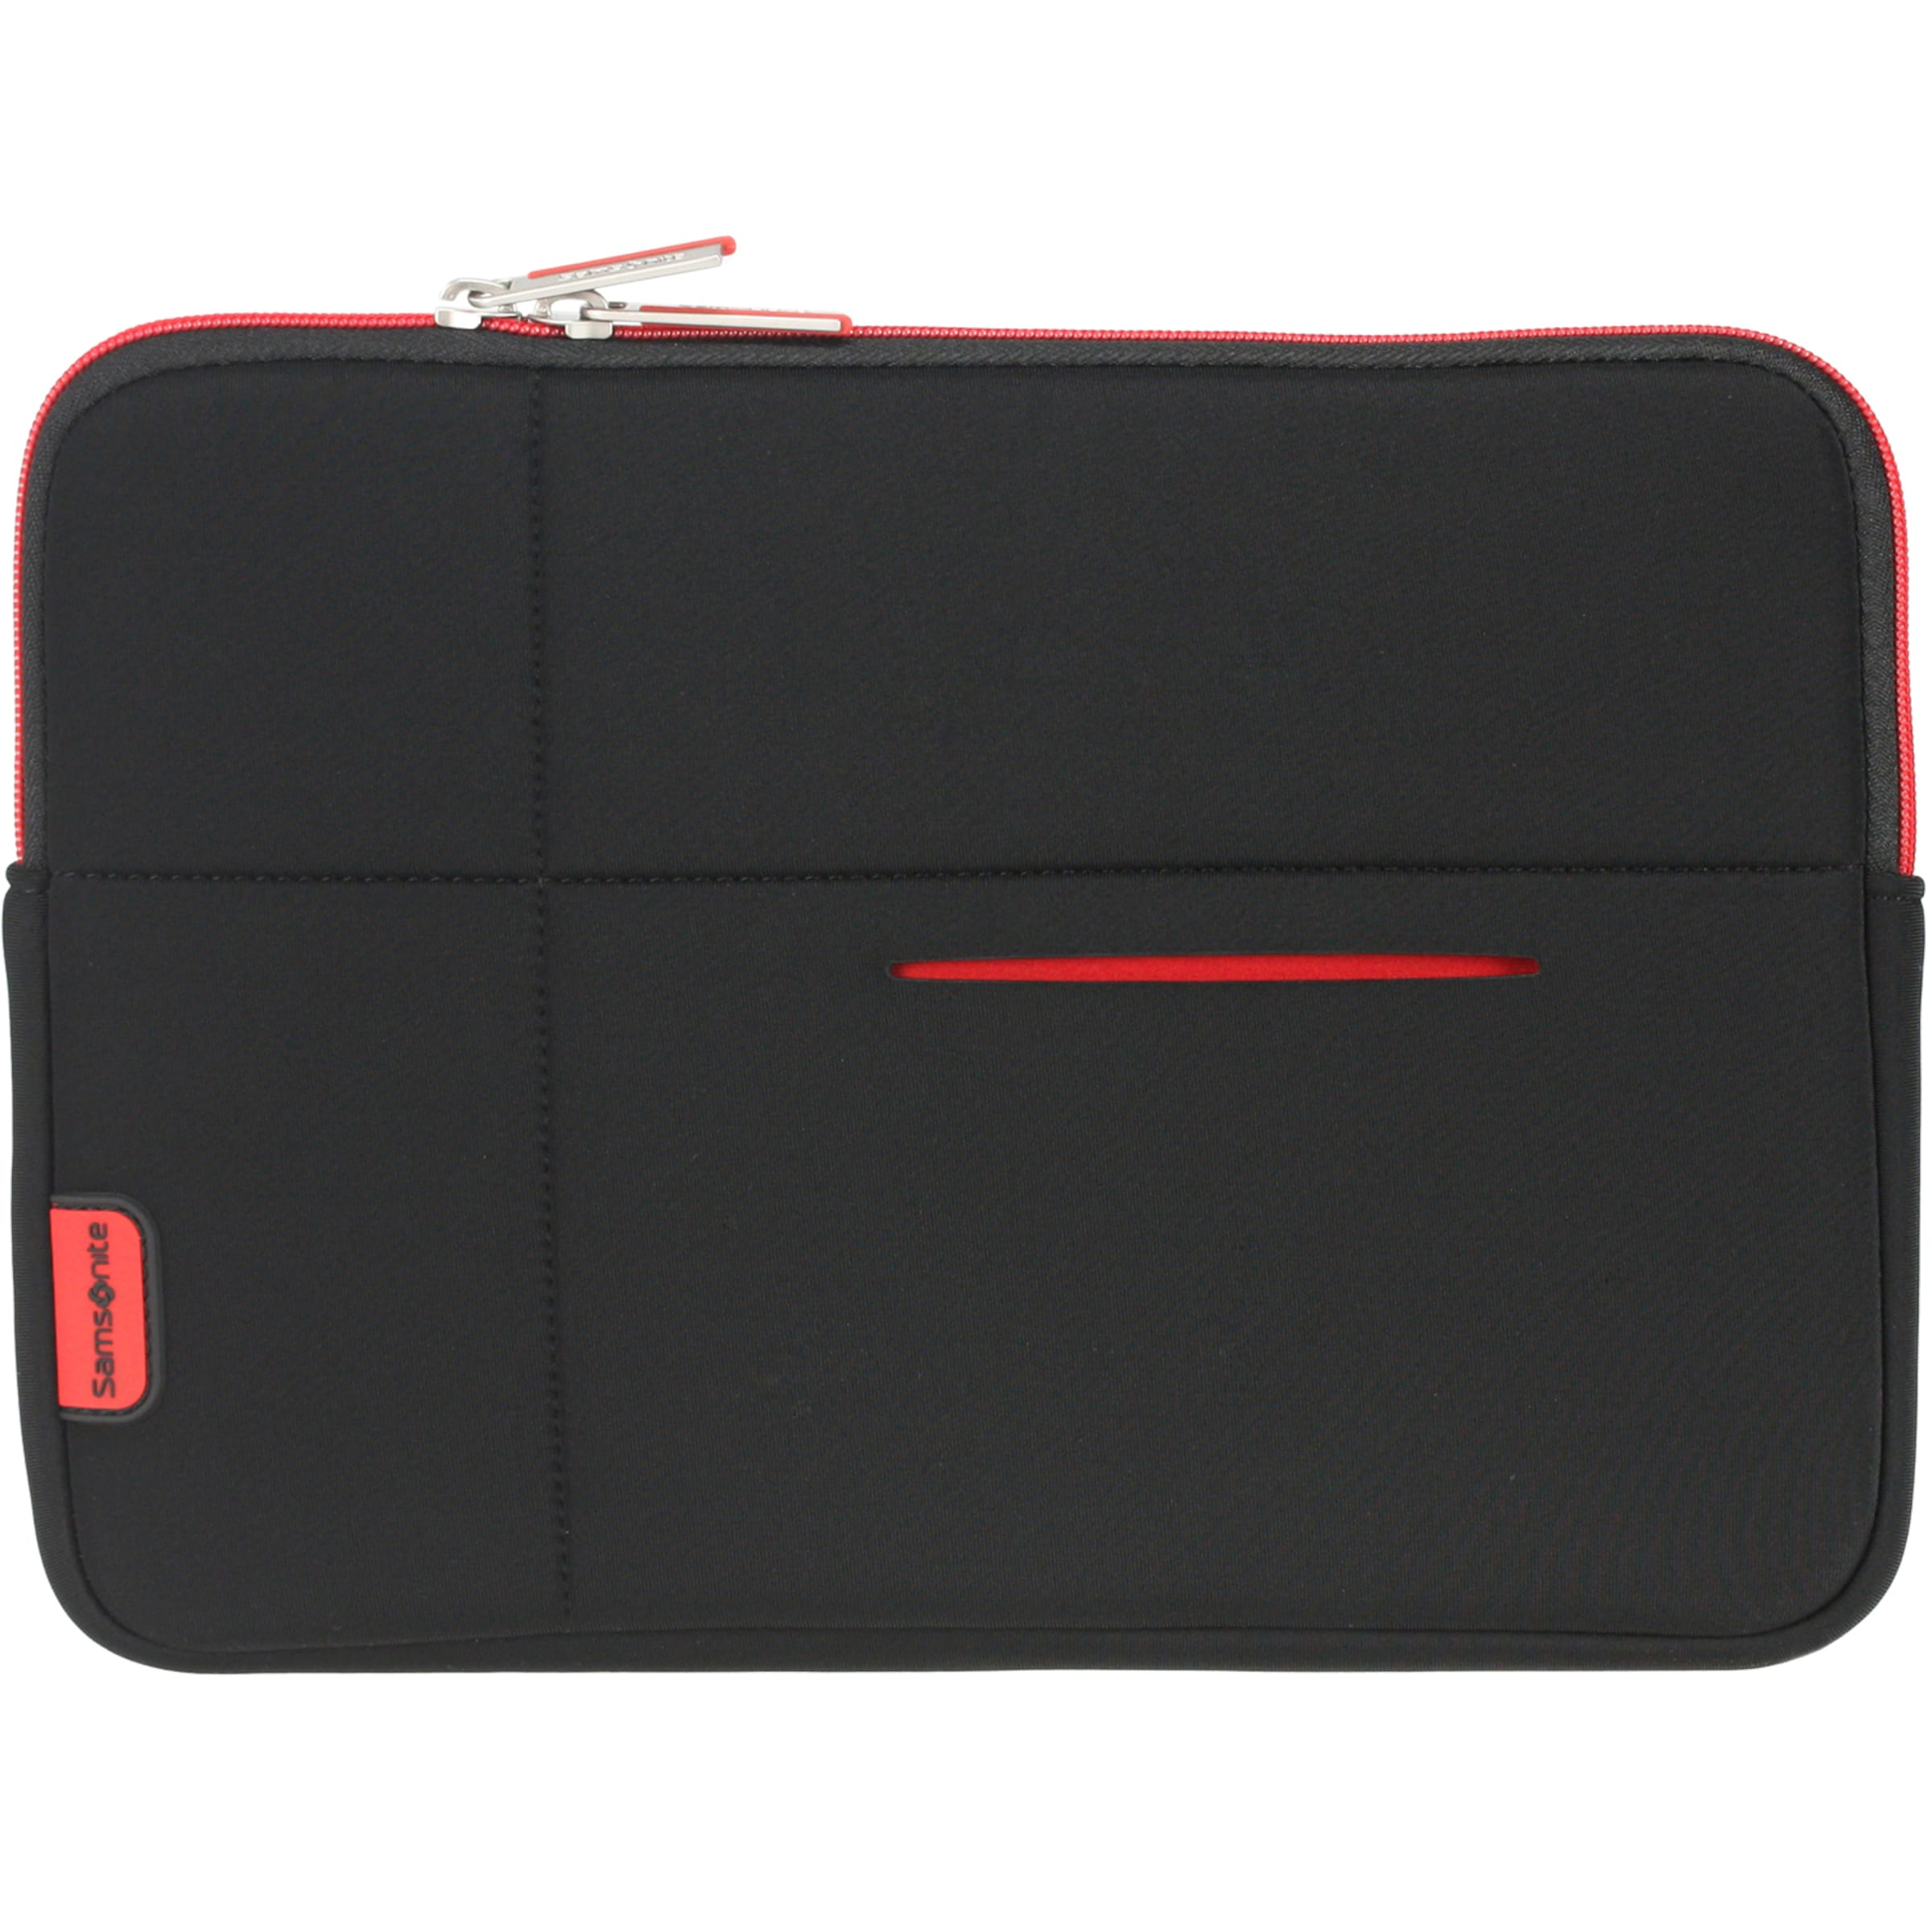 hülle Samsonite Airglow Sleeves Cm In RotSchwarz 28 5 Laptop xBerWodC